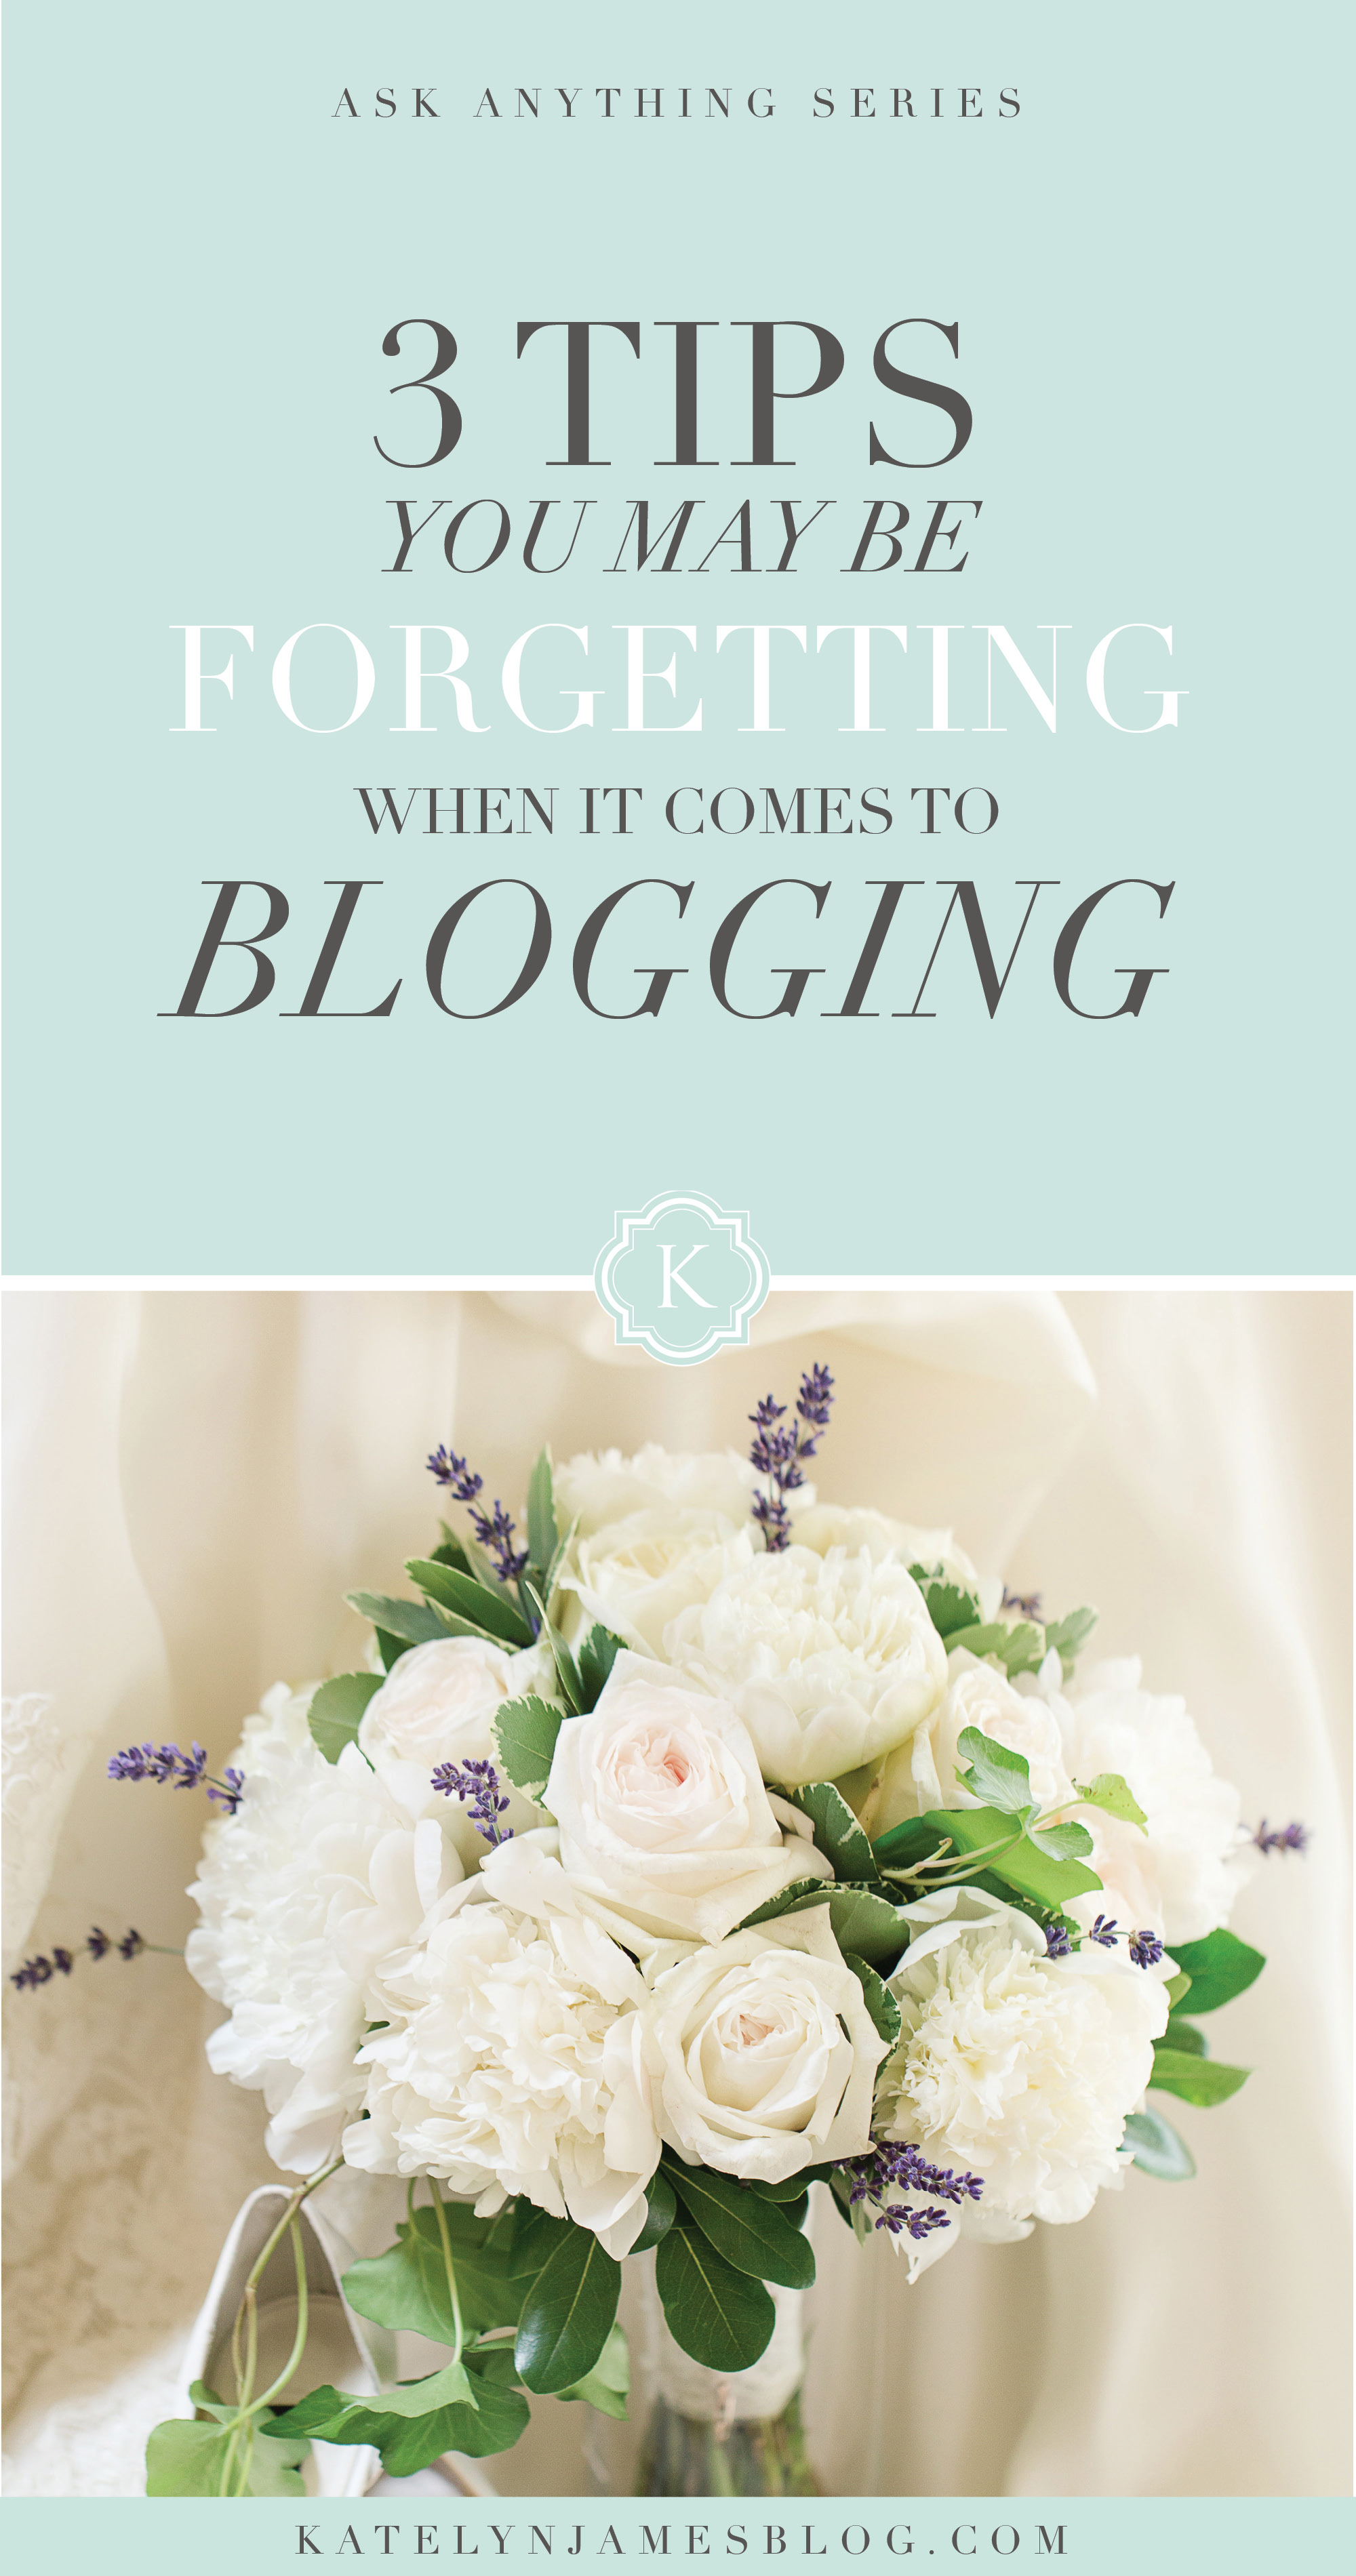 3 Tips You May Be Forgetting About Blogging by Katelyn James Photography